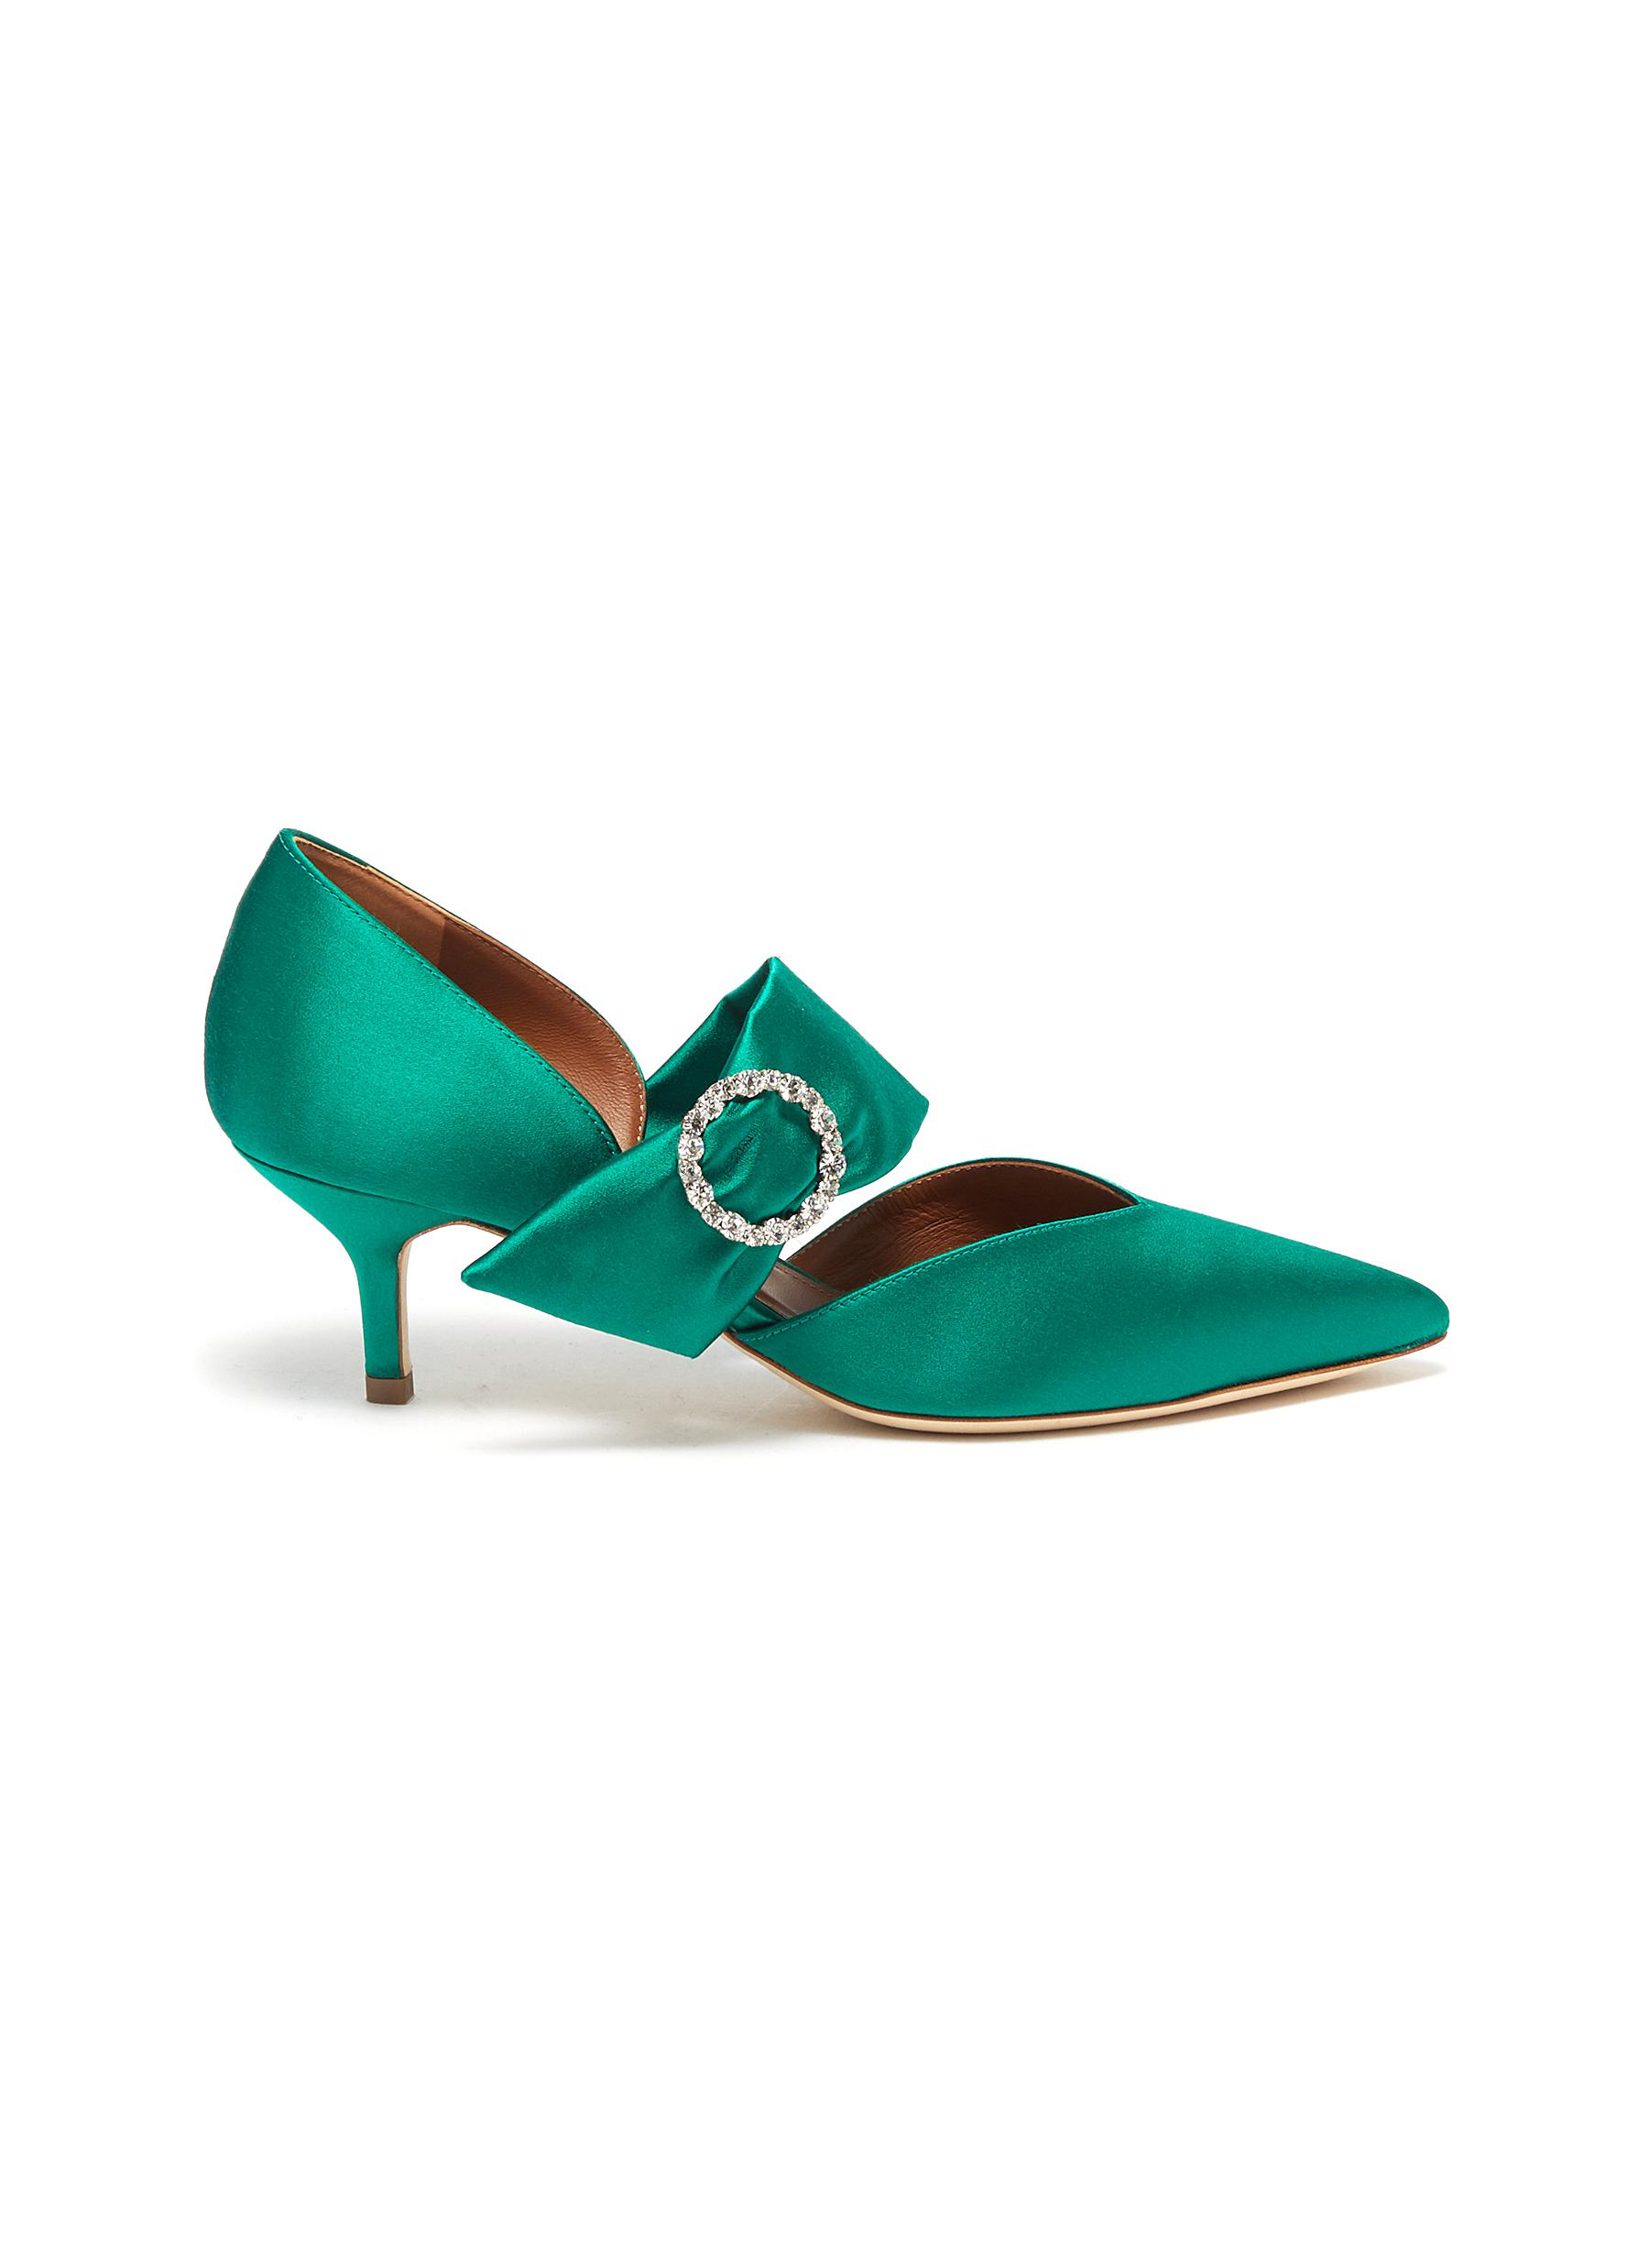 Maite glass crystal buckle satin pumps by Malone Souliers